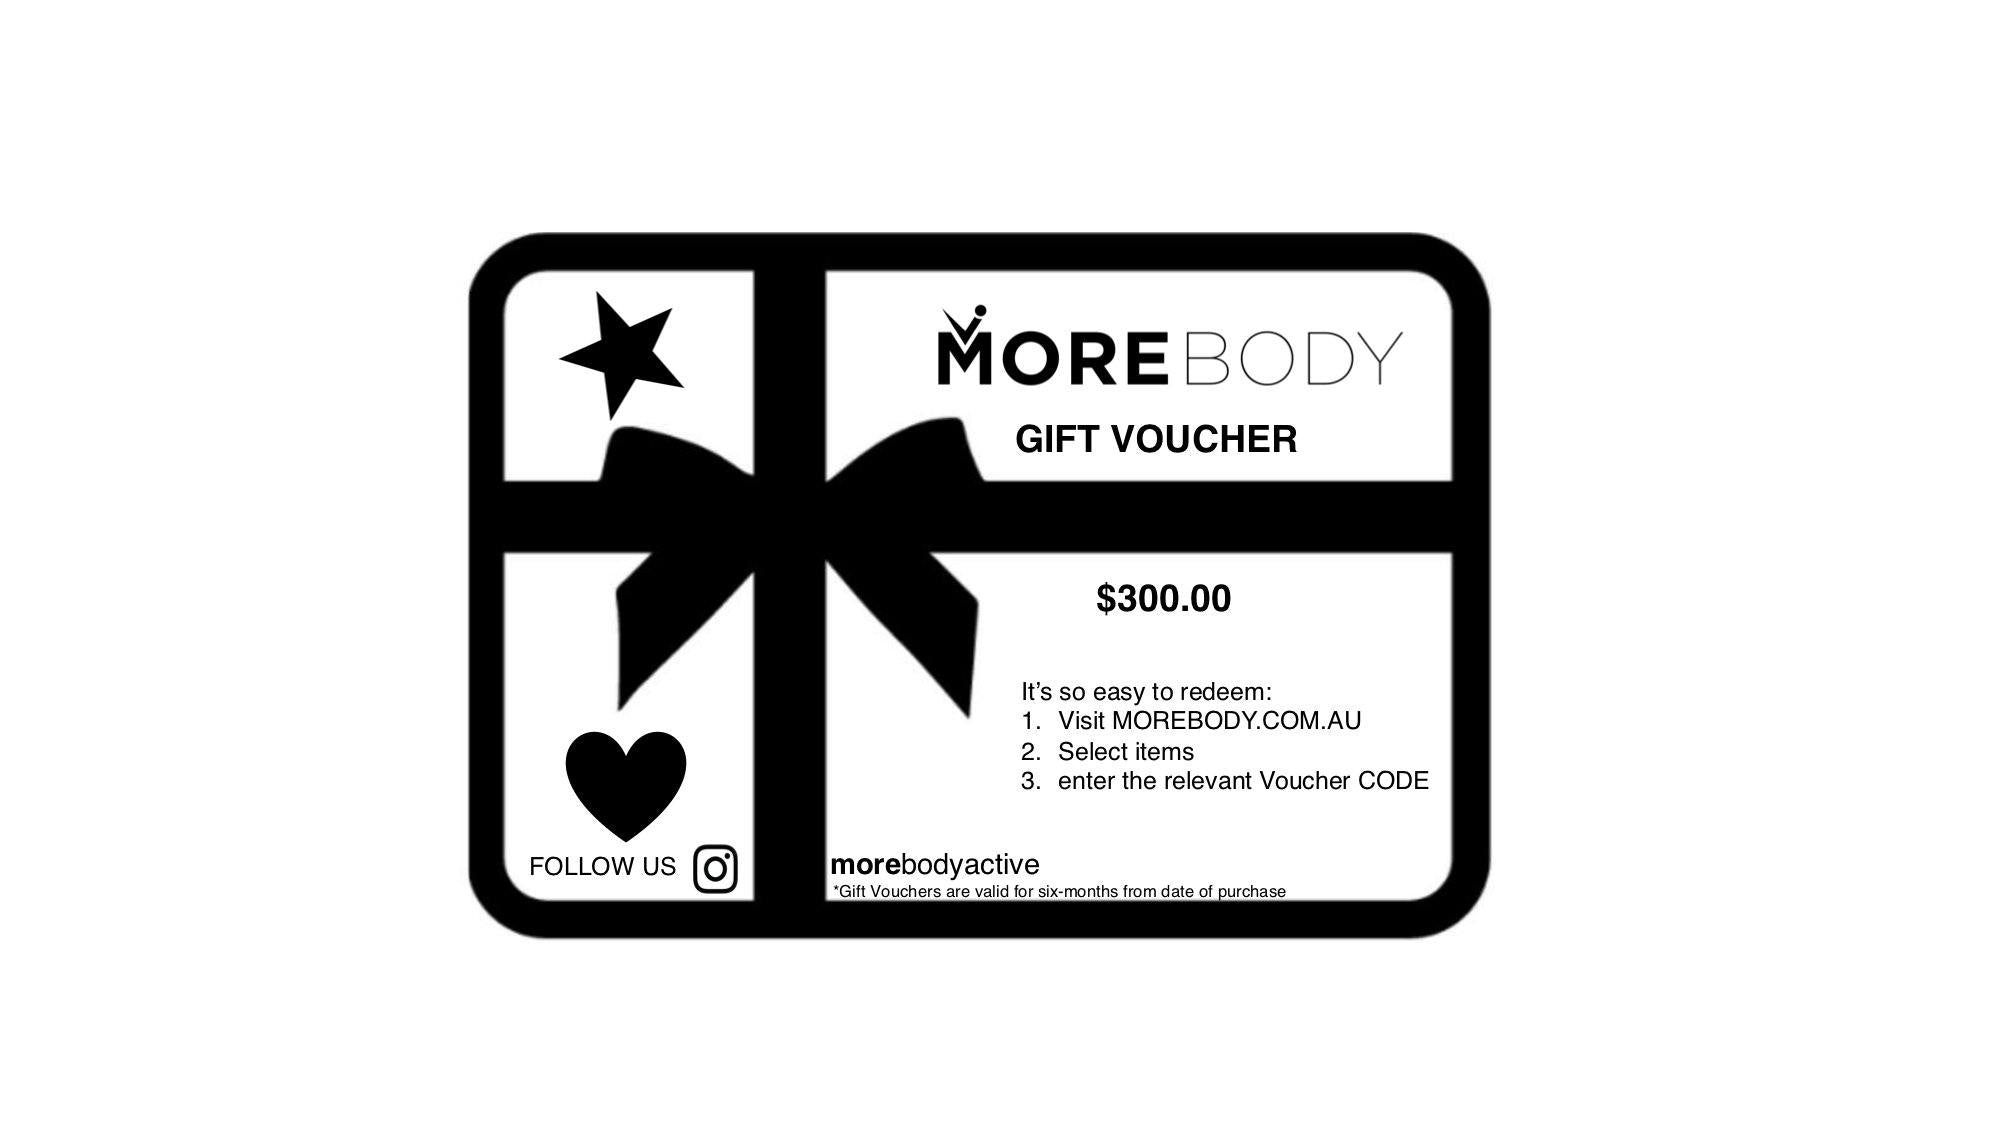 Gift Voucher $300.00 - More Body